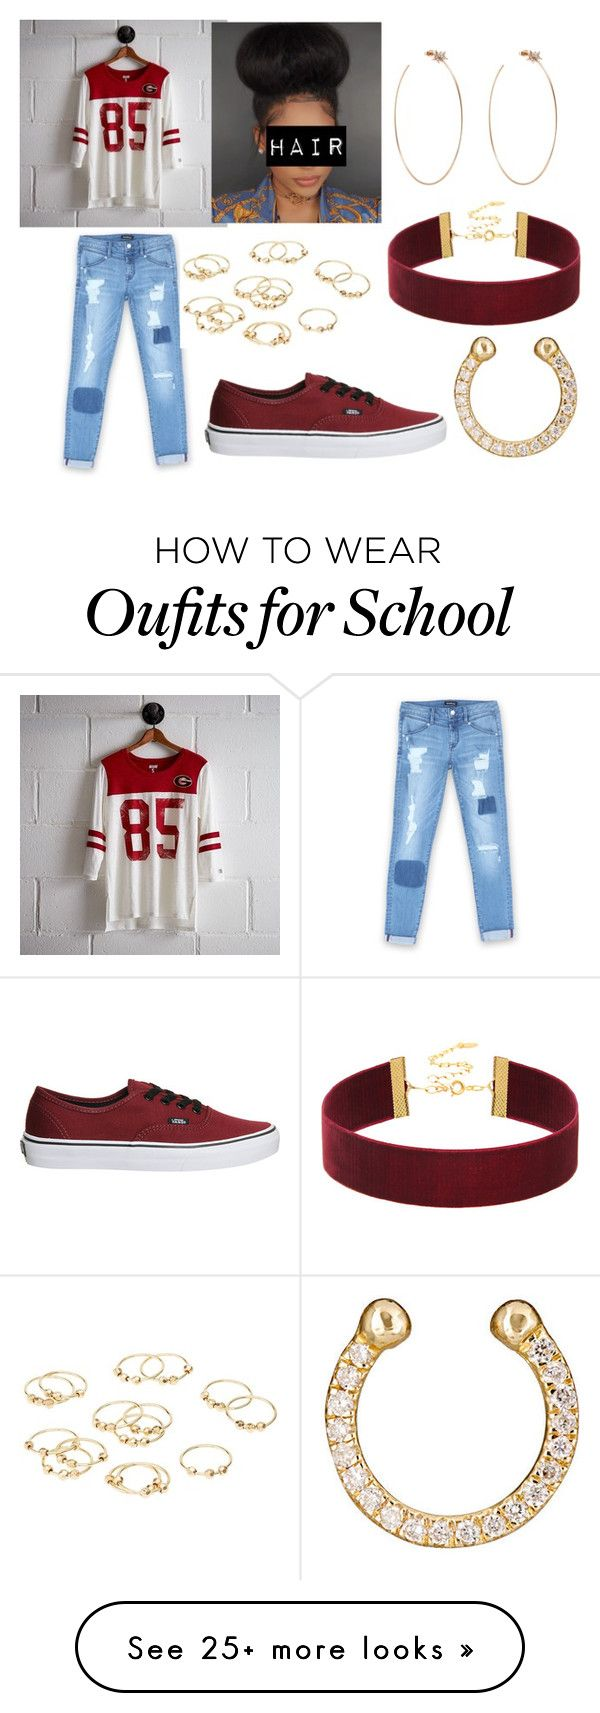 """SCHOOL"" by malie-queen on Polyvore featuring Tailgate, Bebe, Vans, Diane Kordas, Charlotte Russe and Ileana Makri"